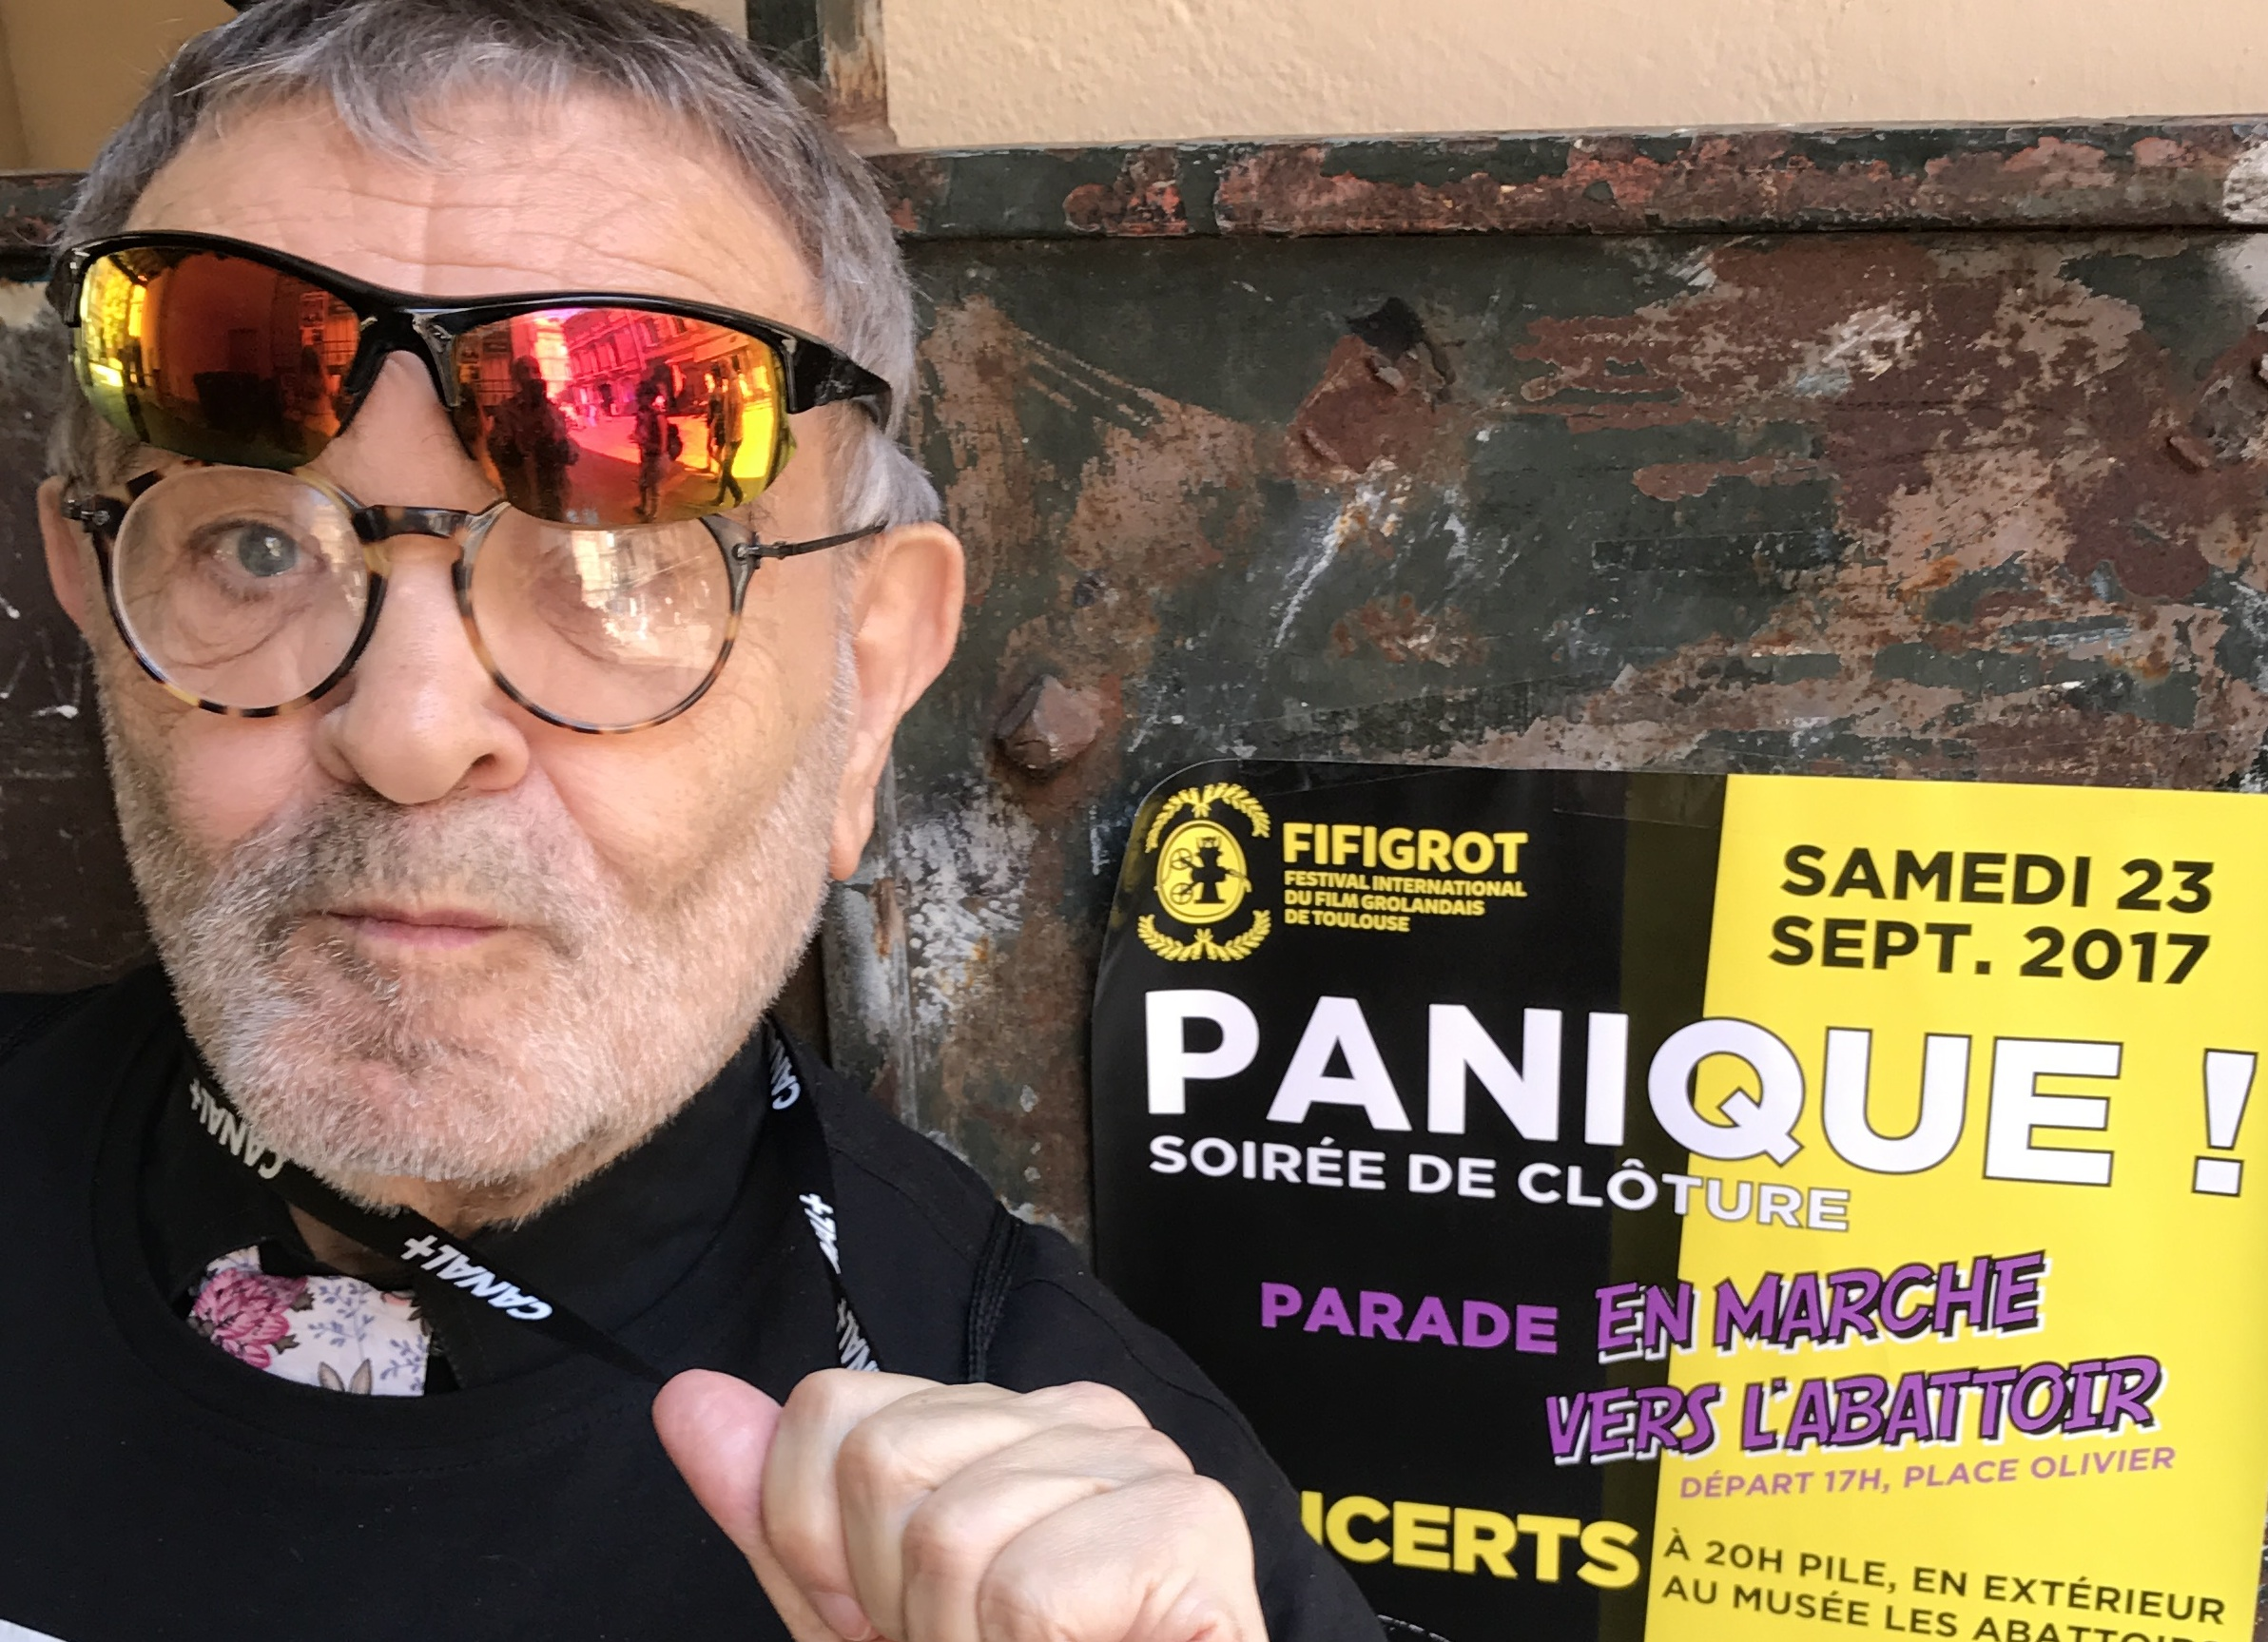 PAN TOULOUSE